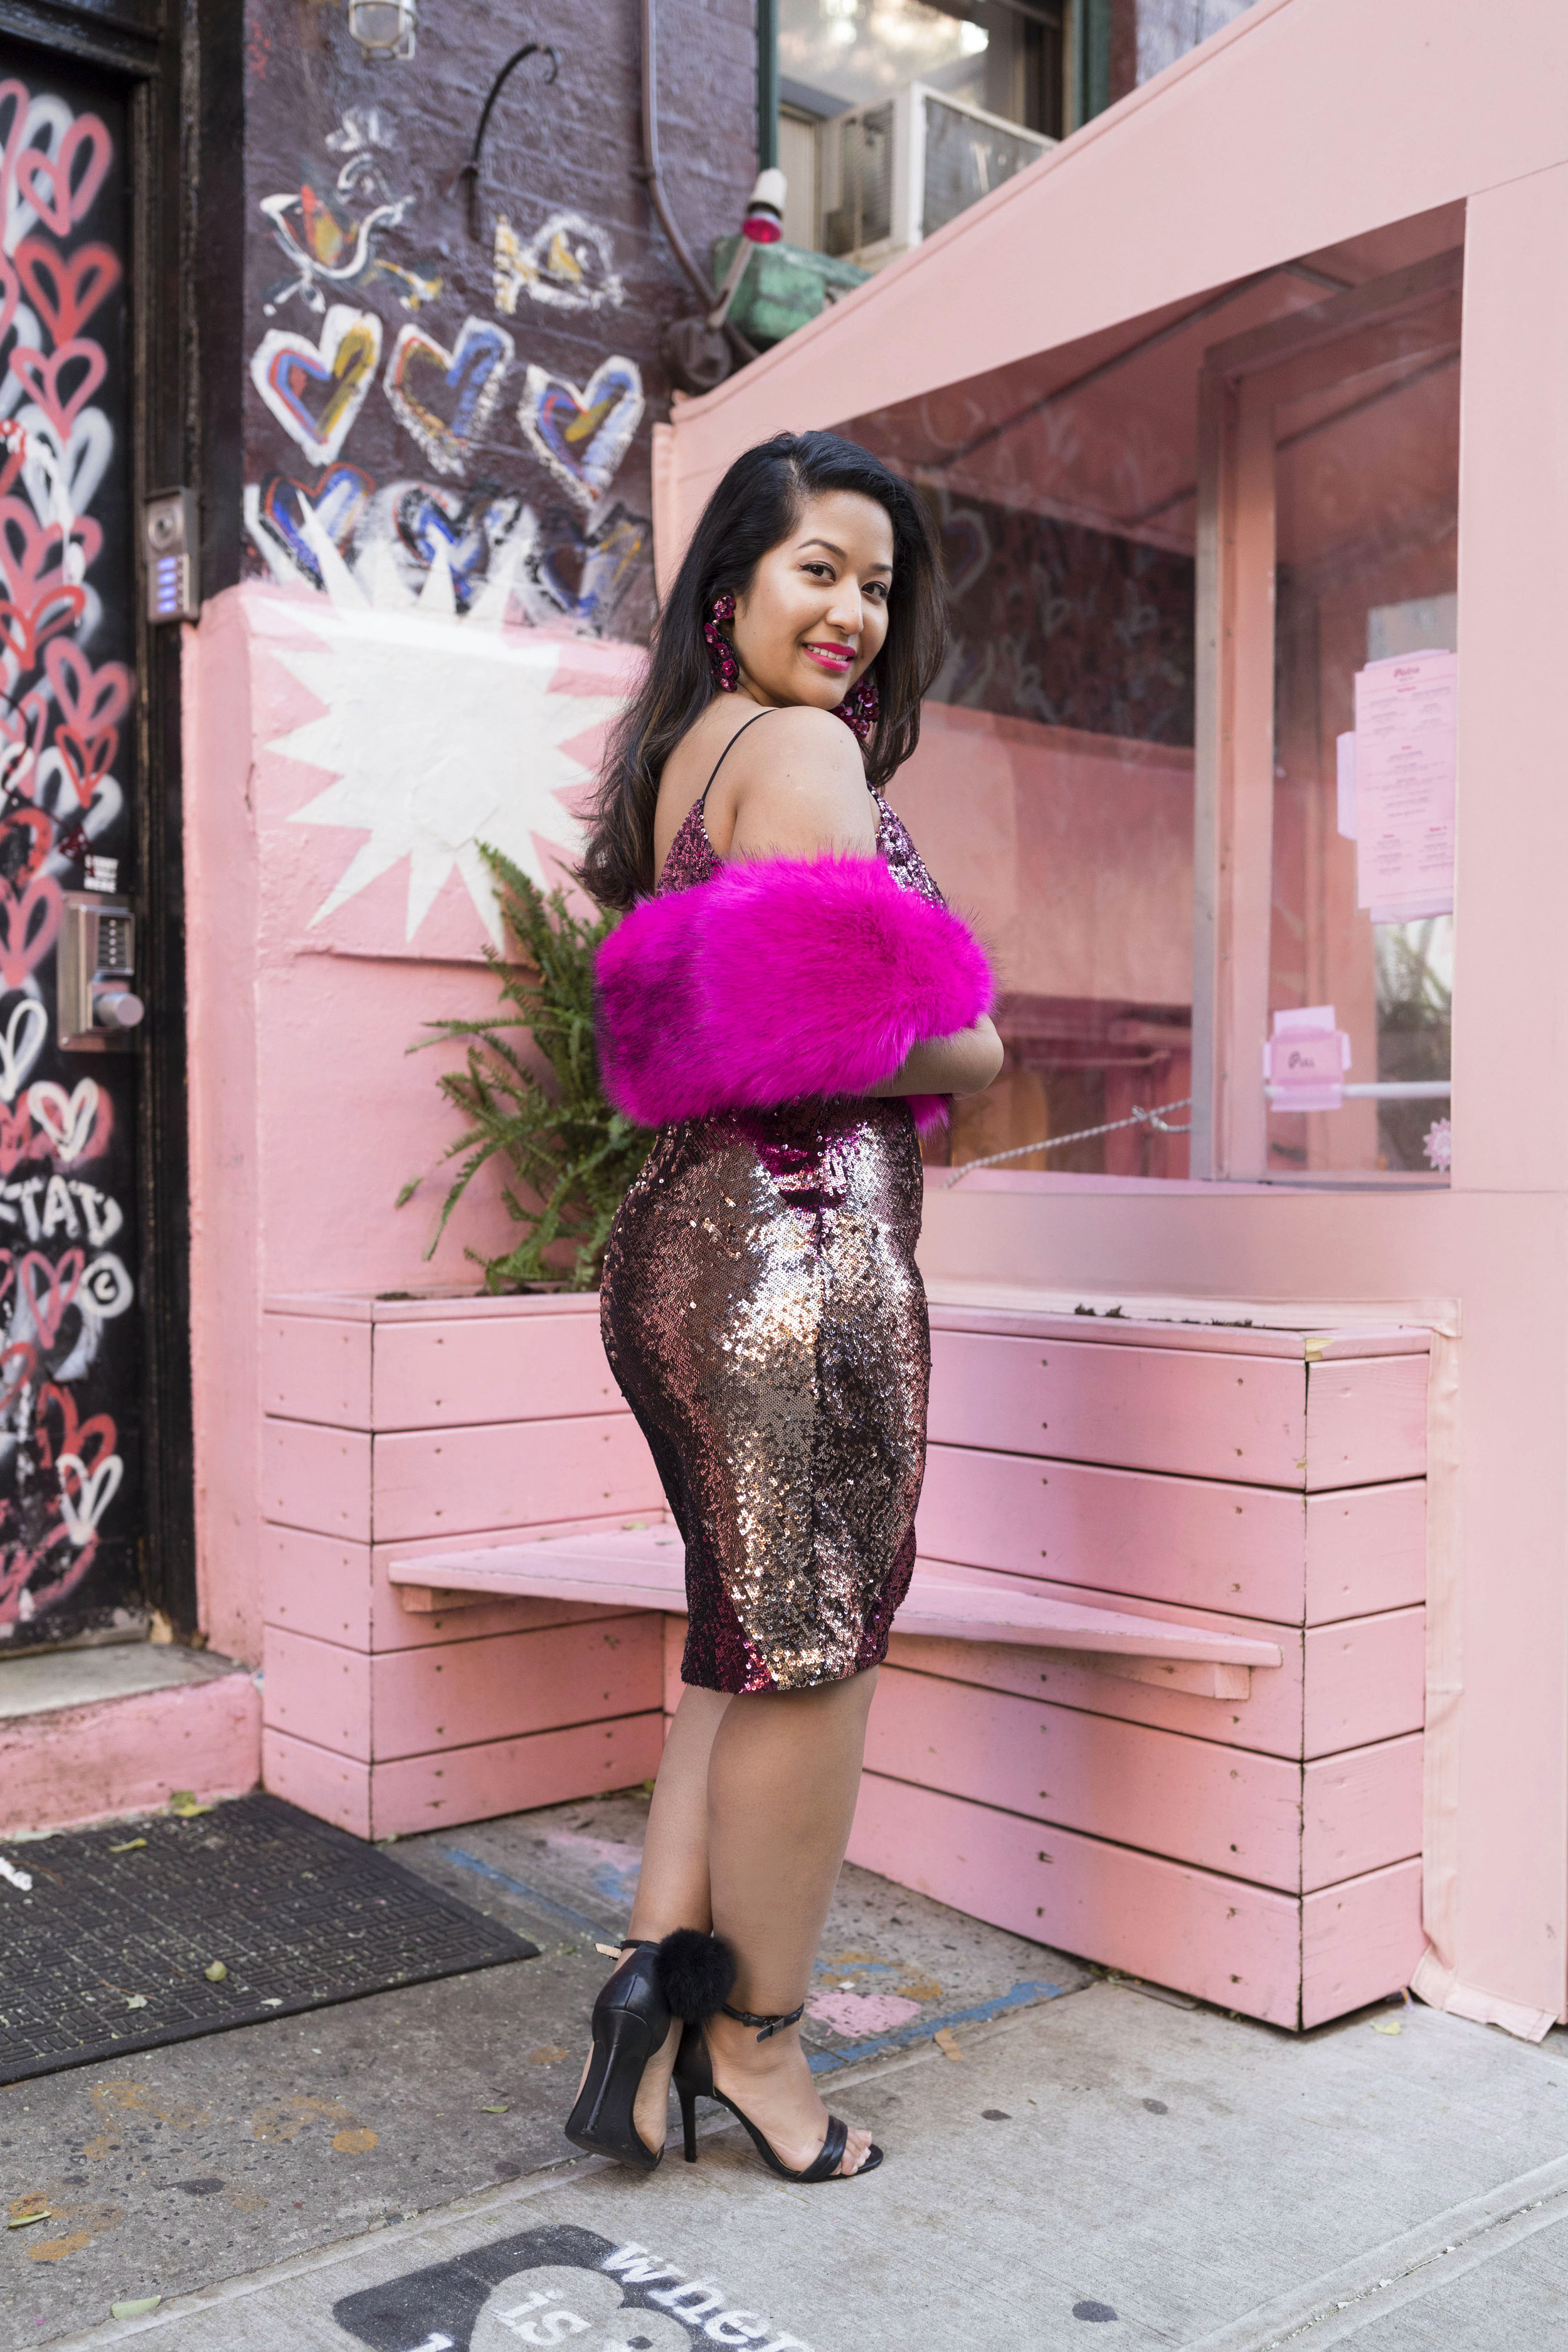 Krity S x New Years Eve Outfit x Aidan Mattox Color Block Pink Sequin Short Dress with Forever 21 Faux Fur Scarf 10.jpg